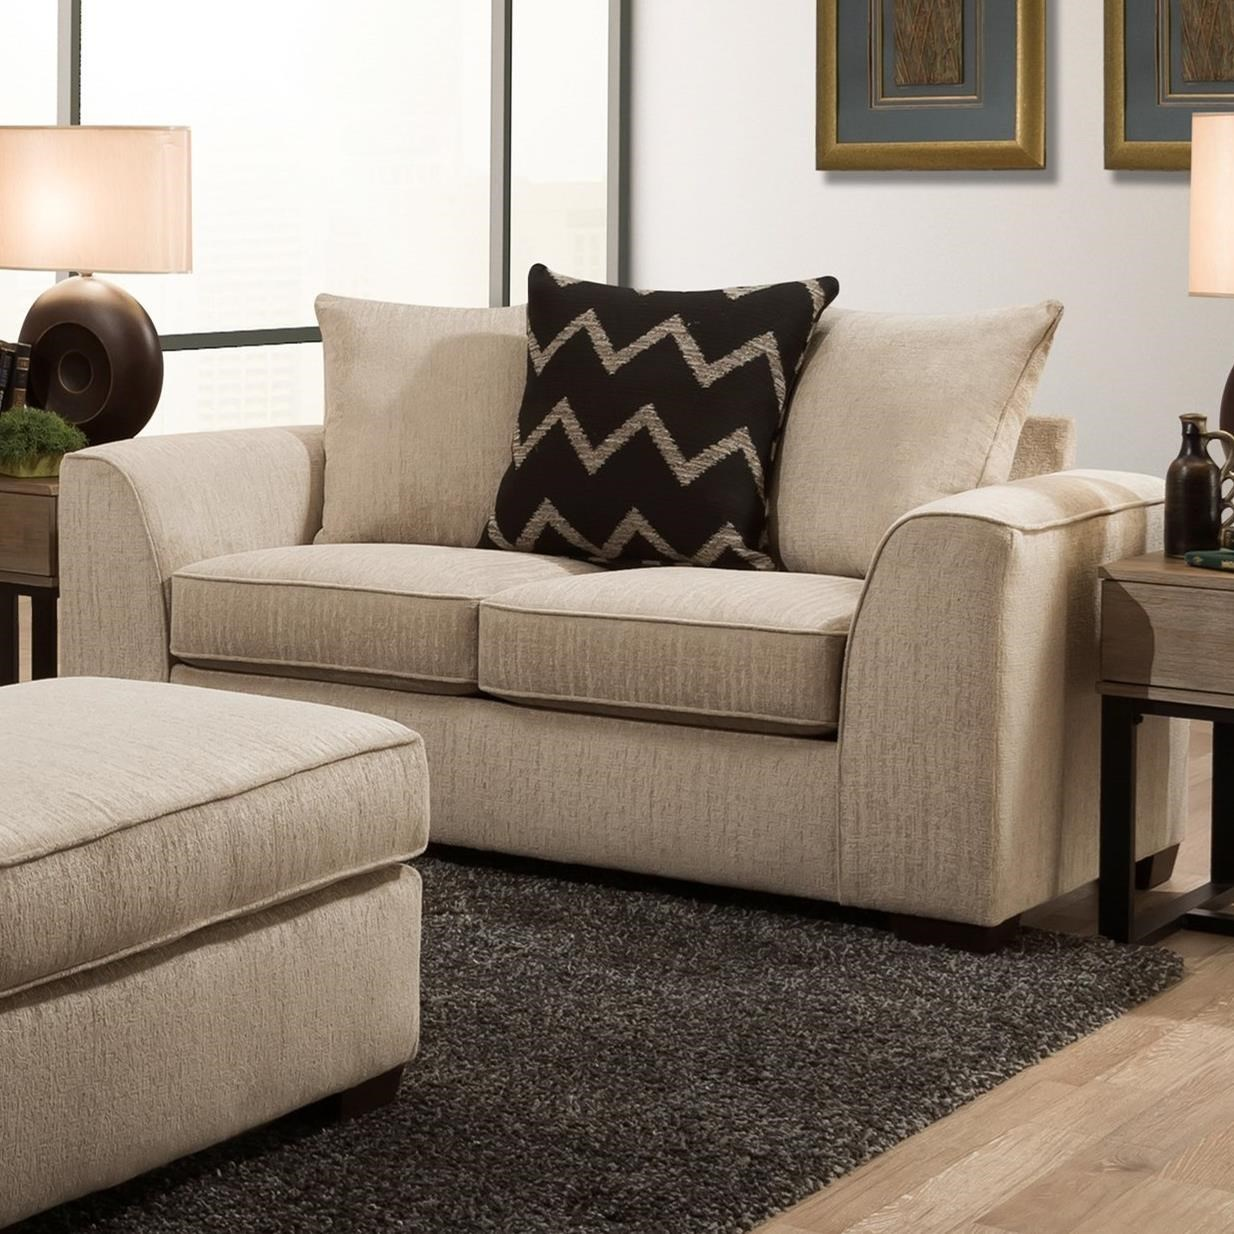 2600 Loveseat by Peak Living at Prime Brothers Furniture